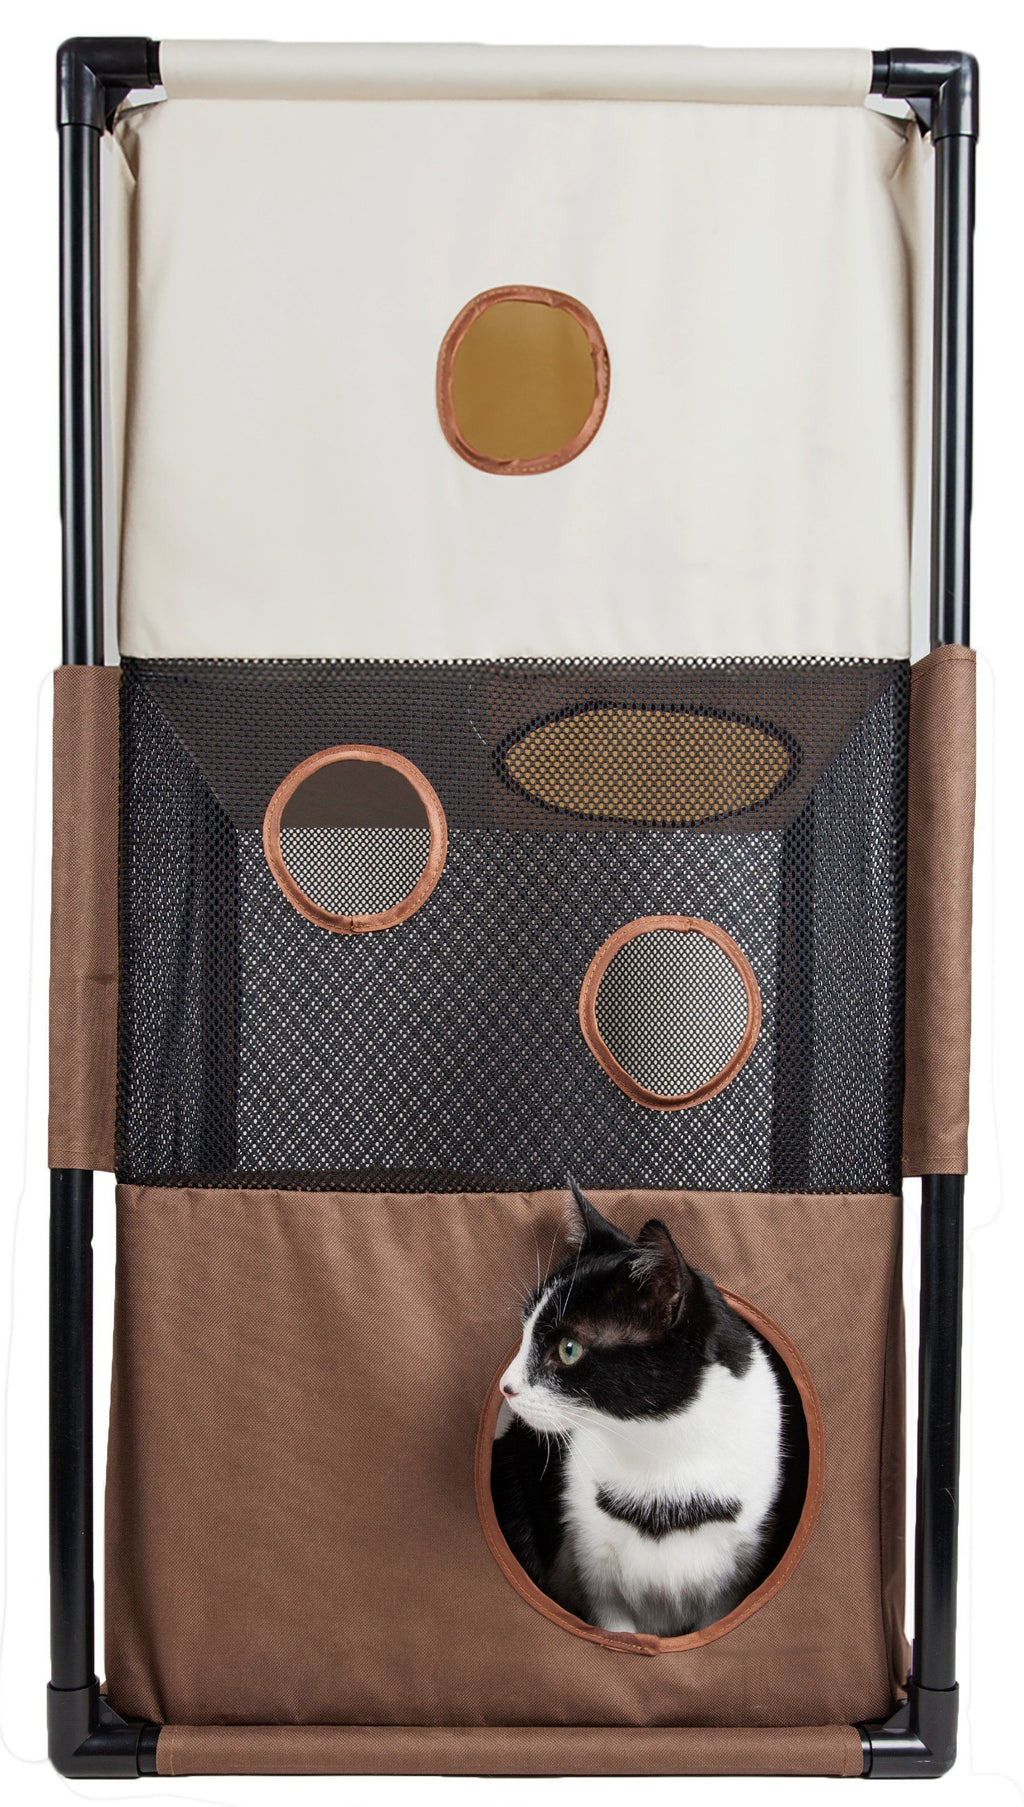 Pet Life ® 'Kitty-Square' Collapsible Travel Interactive Kitty Cat Tree Maze House Loun...